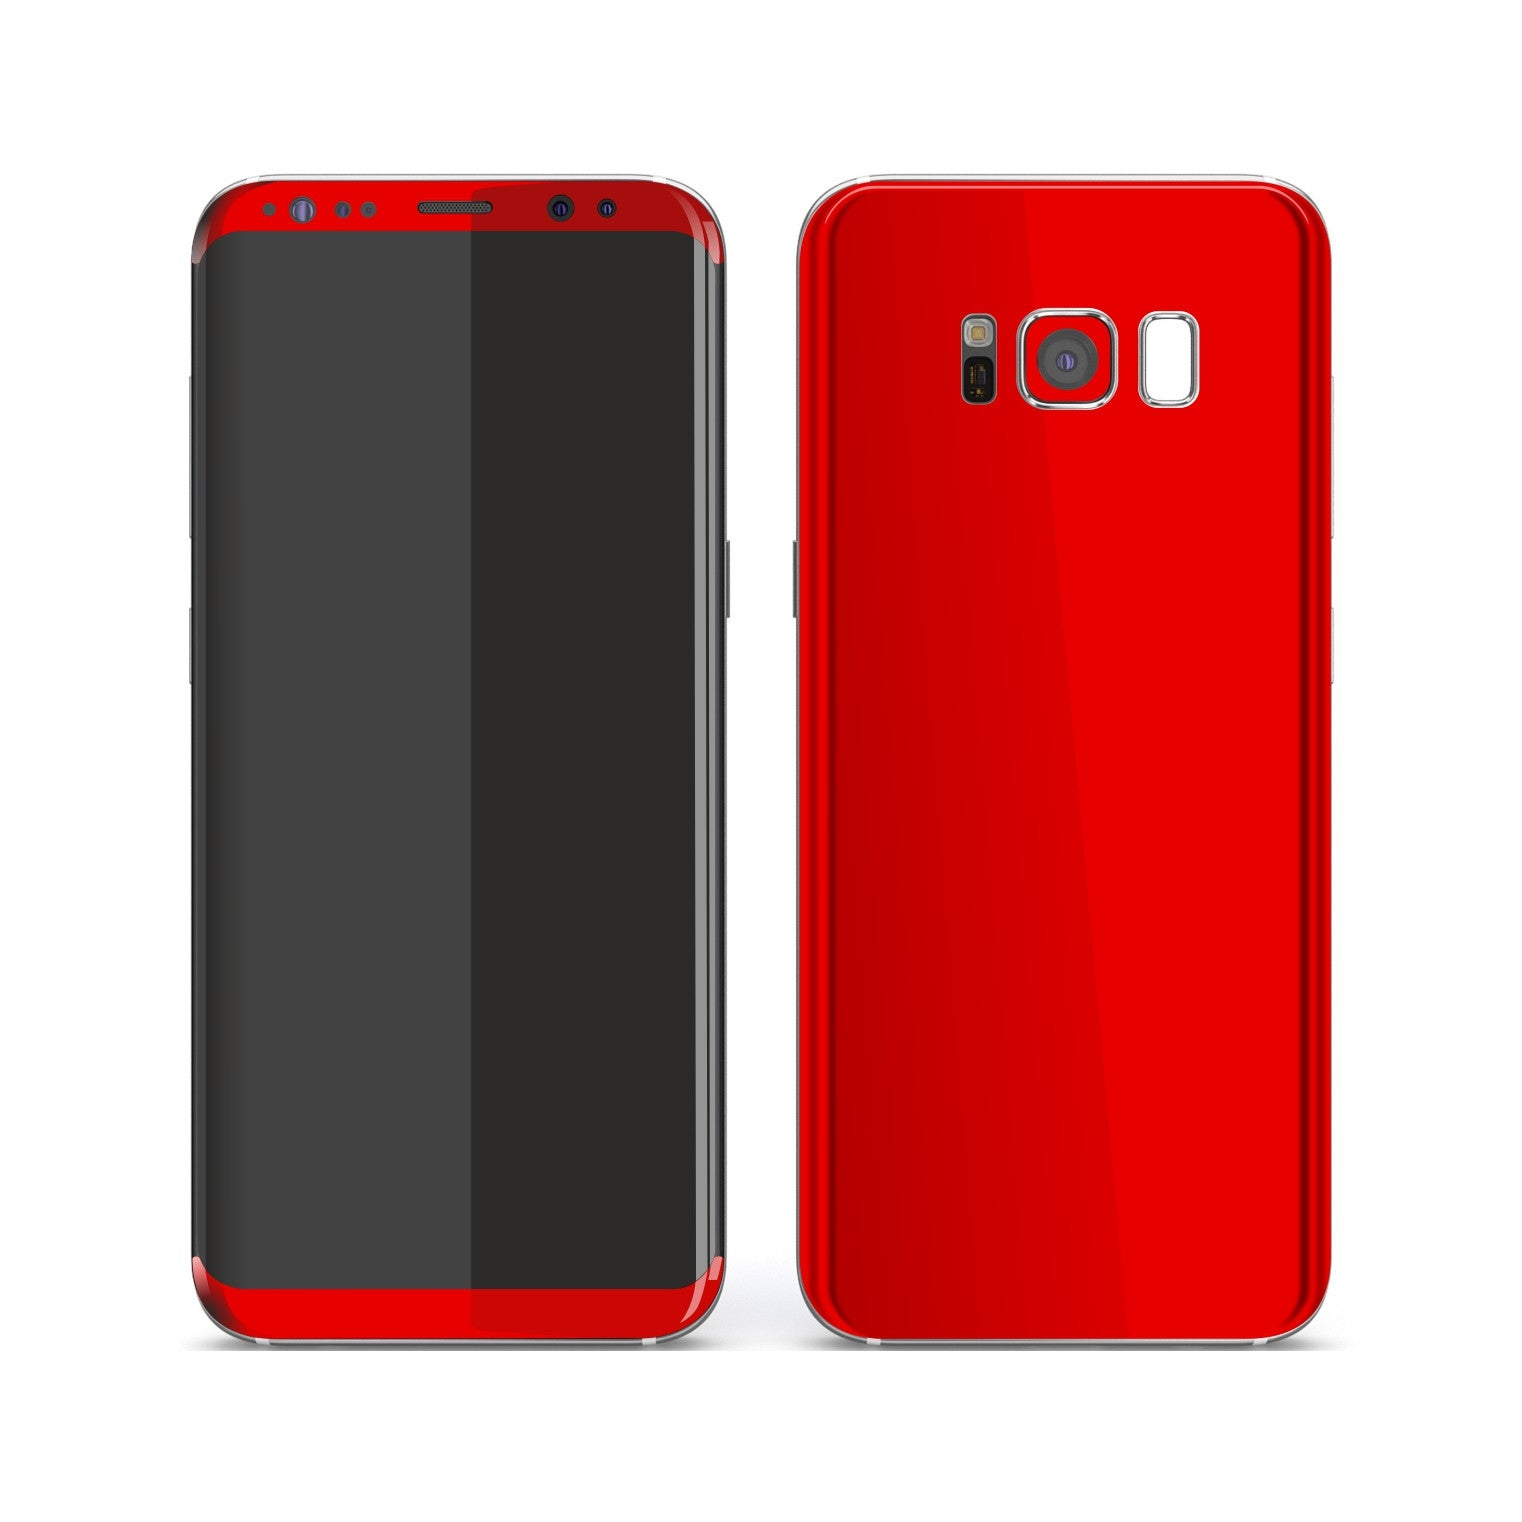 Samsung Galaxy S8+ Bright Red Glossy Gloss Finish Skin, Decal, Wrap, Protector, Cover by EasySkinz | EasySkinz.com